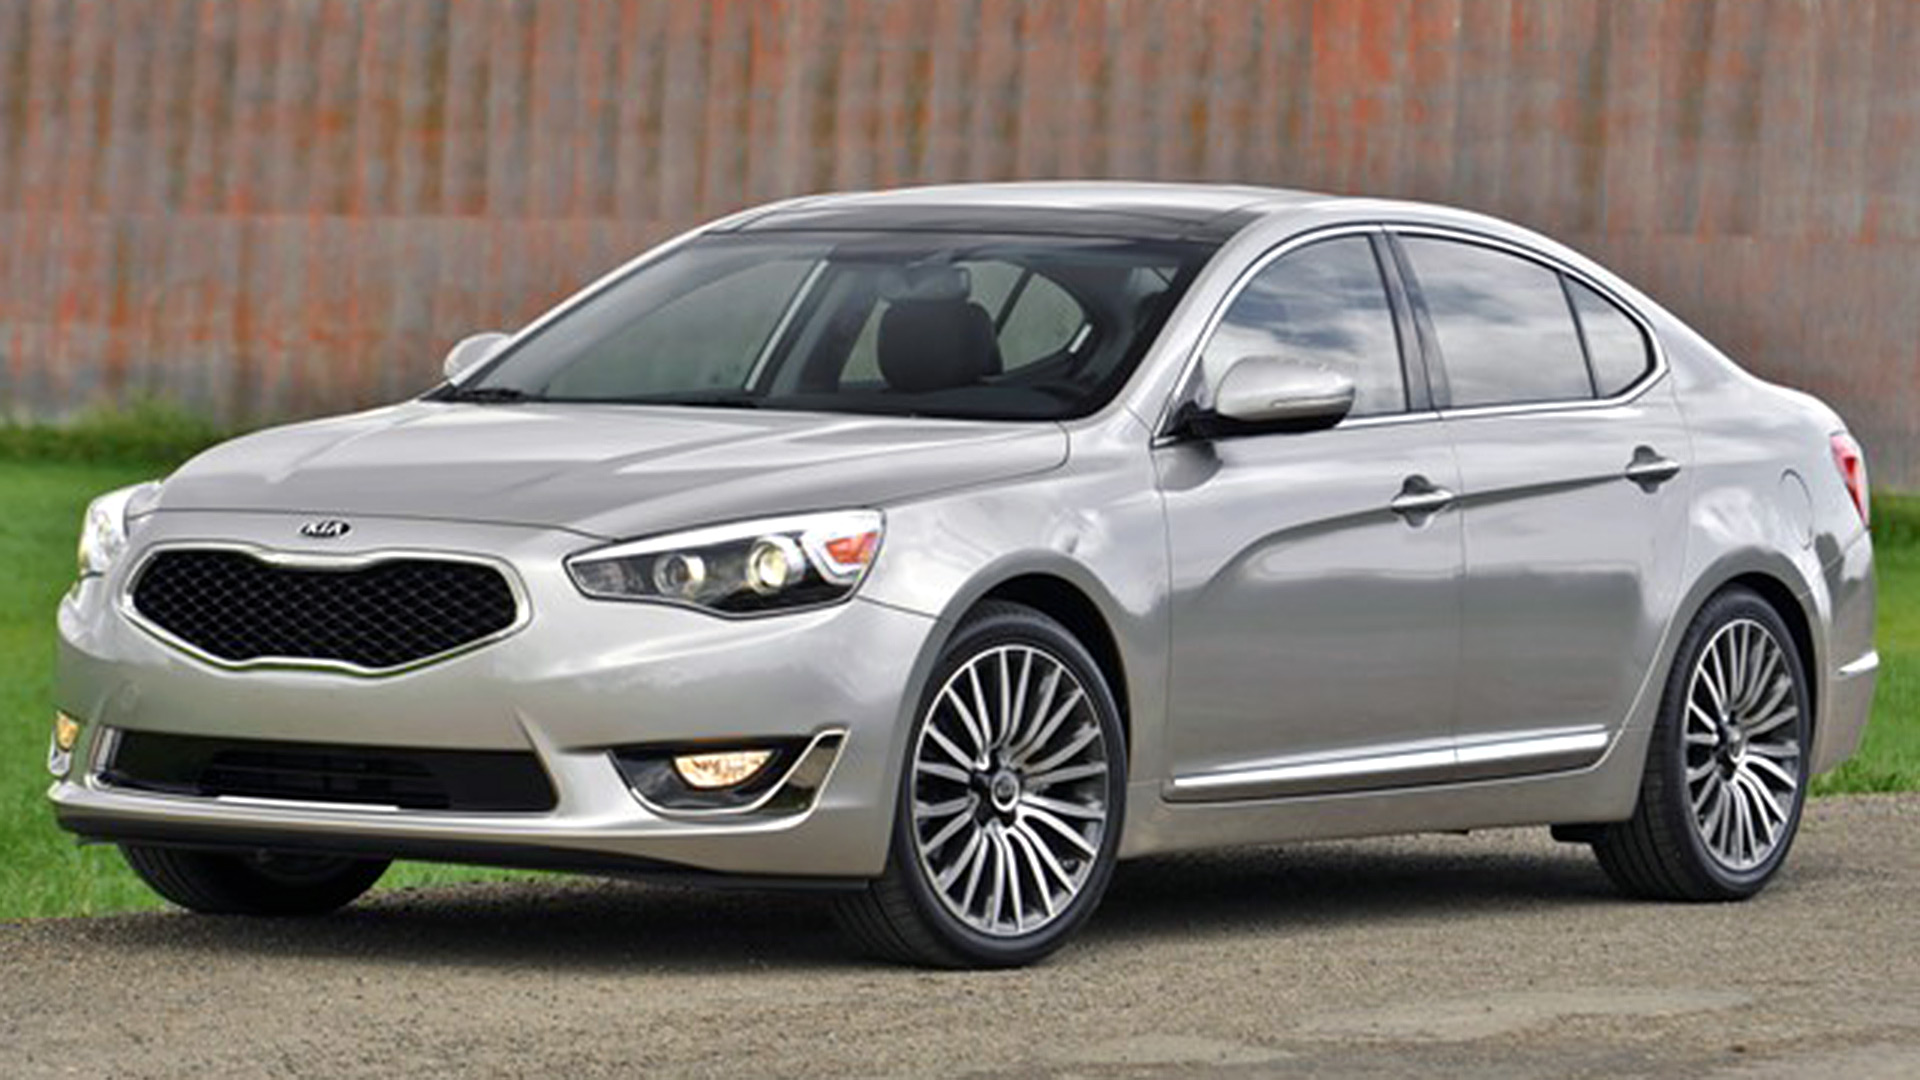 2016 Kia Cadenza 4-door sedan